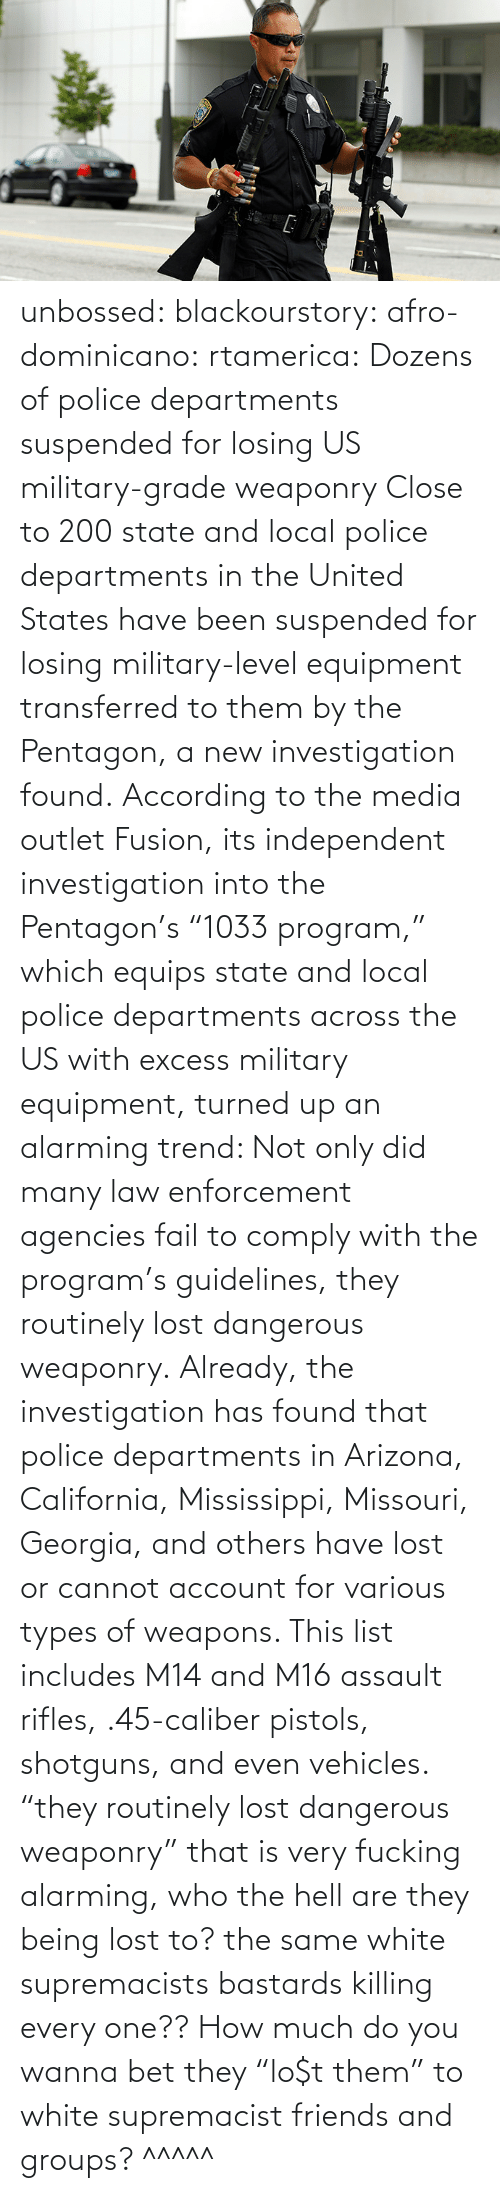 "The Us: unbossed: blackourstory:  afro-dominicano:  rtamerica:  Dozens of police departments suspended for losing US military-grade weaponry Close to 200 state and local police departments in the United States have been suspended for losing military-level equipment transferred to them by the Pentagon, a new investigation found. According to the media outlet Fusion, its independent investigation into the Pentagon's ""1033 program,"" which equips state and local police departments across the US with excess military equipment, turned up an alarming trend: Not only did many law enforcement agencies fail to comply with the program's guidelines, they routinely lost dangerous weaponry. Already, the investigation has found that police departments in Arizona, California, Mississippi, Missouri, Georgia, and others have lost or cannot account for various types of weapons. This list includes M14 and M16 assault rifles, .45-caliber pistols, shotguns, and even vehicles.  ""they routinely lost dangerous weaponry"" that is very fucking alarming, who the hell are they being lost to? the same white supremacists bastards killing every one??  How much do you wanna bet they ""lo$t them"" to white supremacist friends and groups?   ^^^^^"